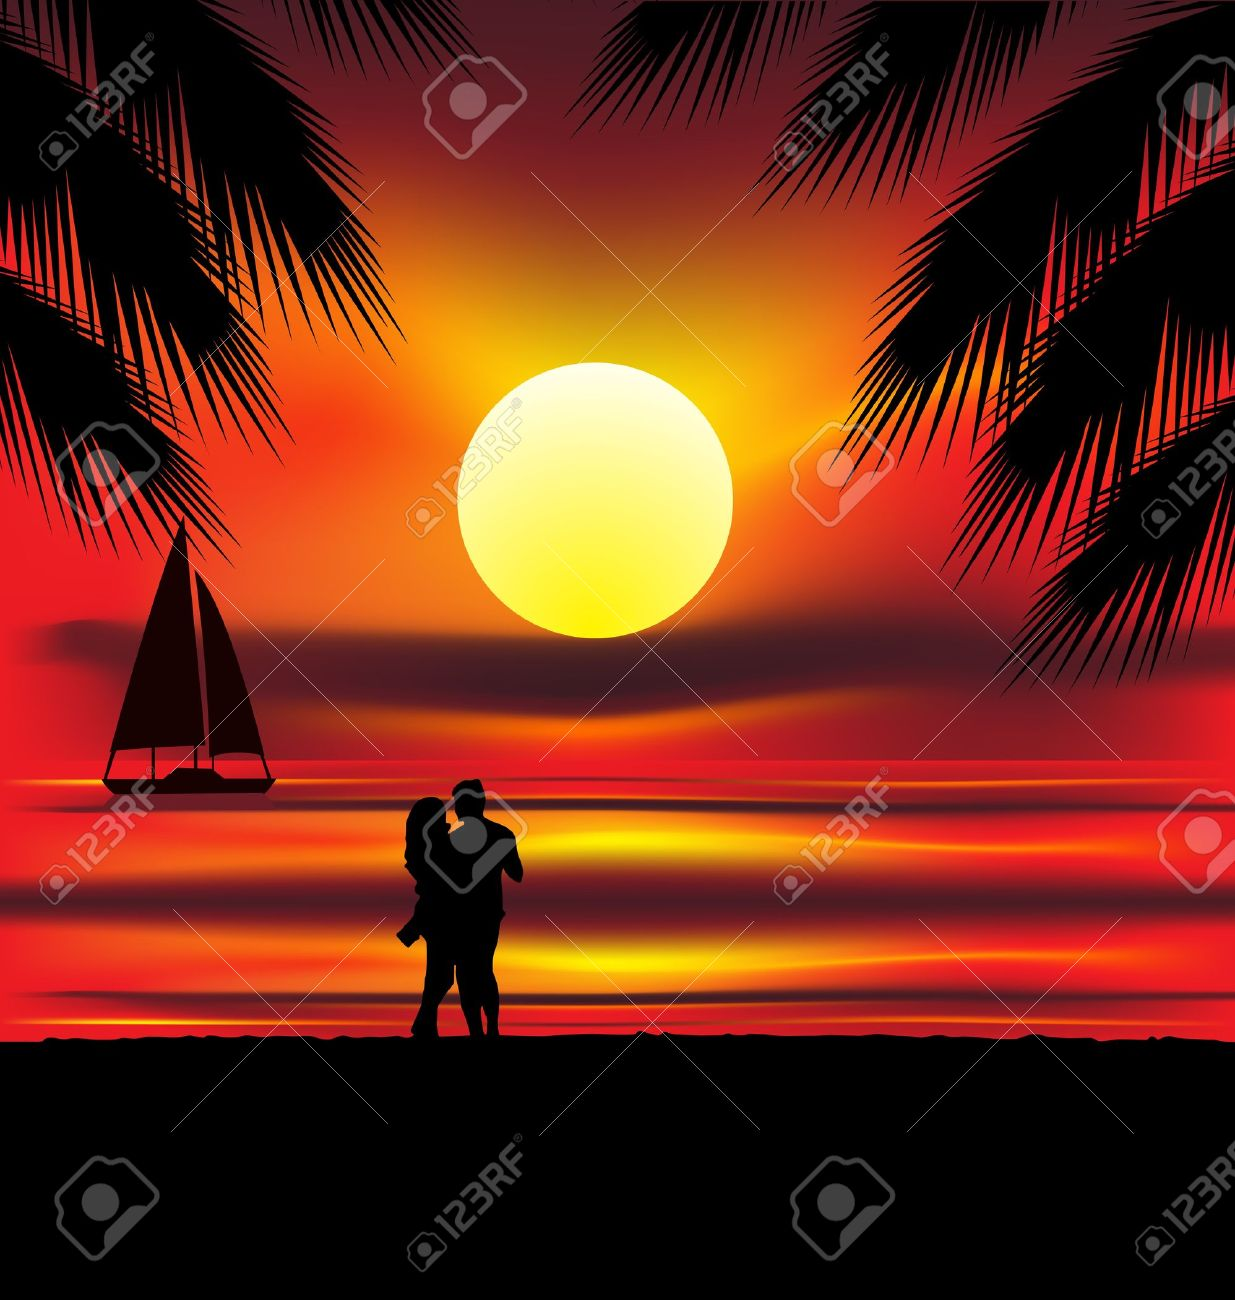 Two lovers on the beach with tropical sunset, palms, sea and island behind them Stock Vector - 10785594